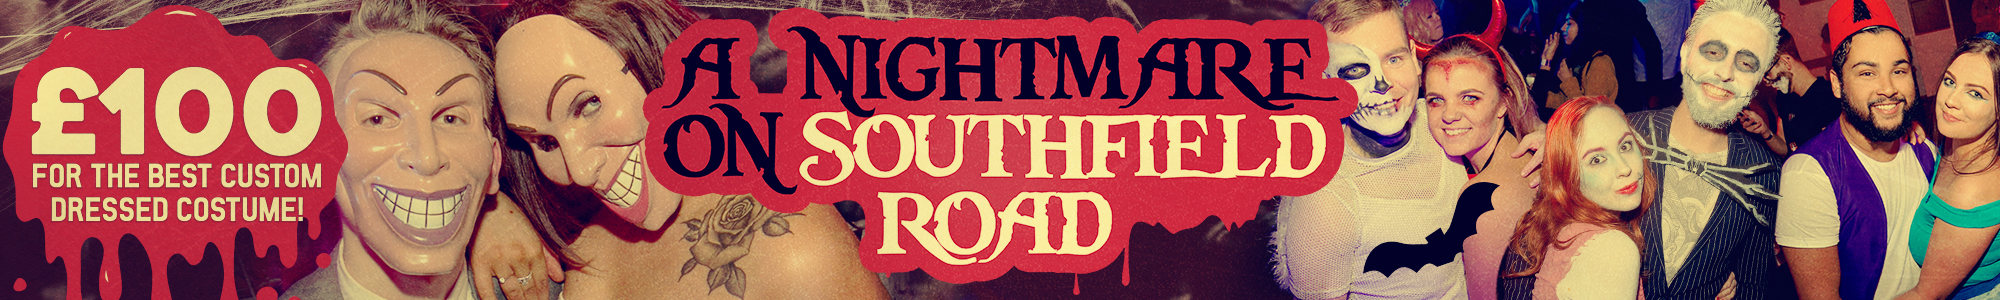 A nightmare on southfield road web banner